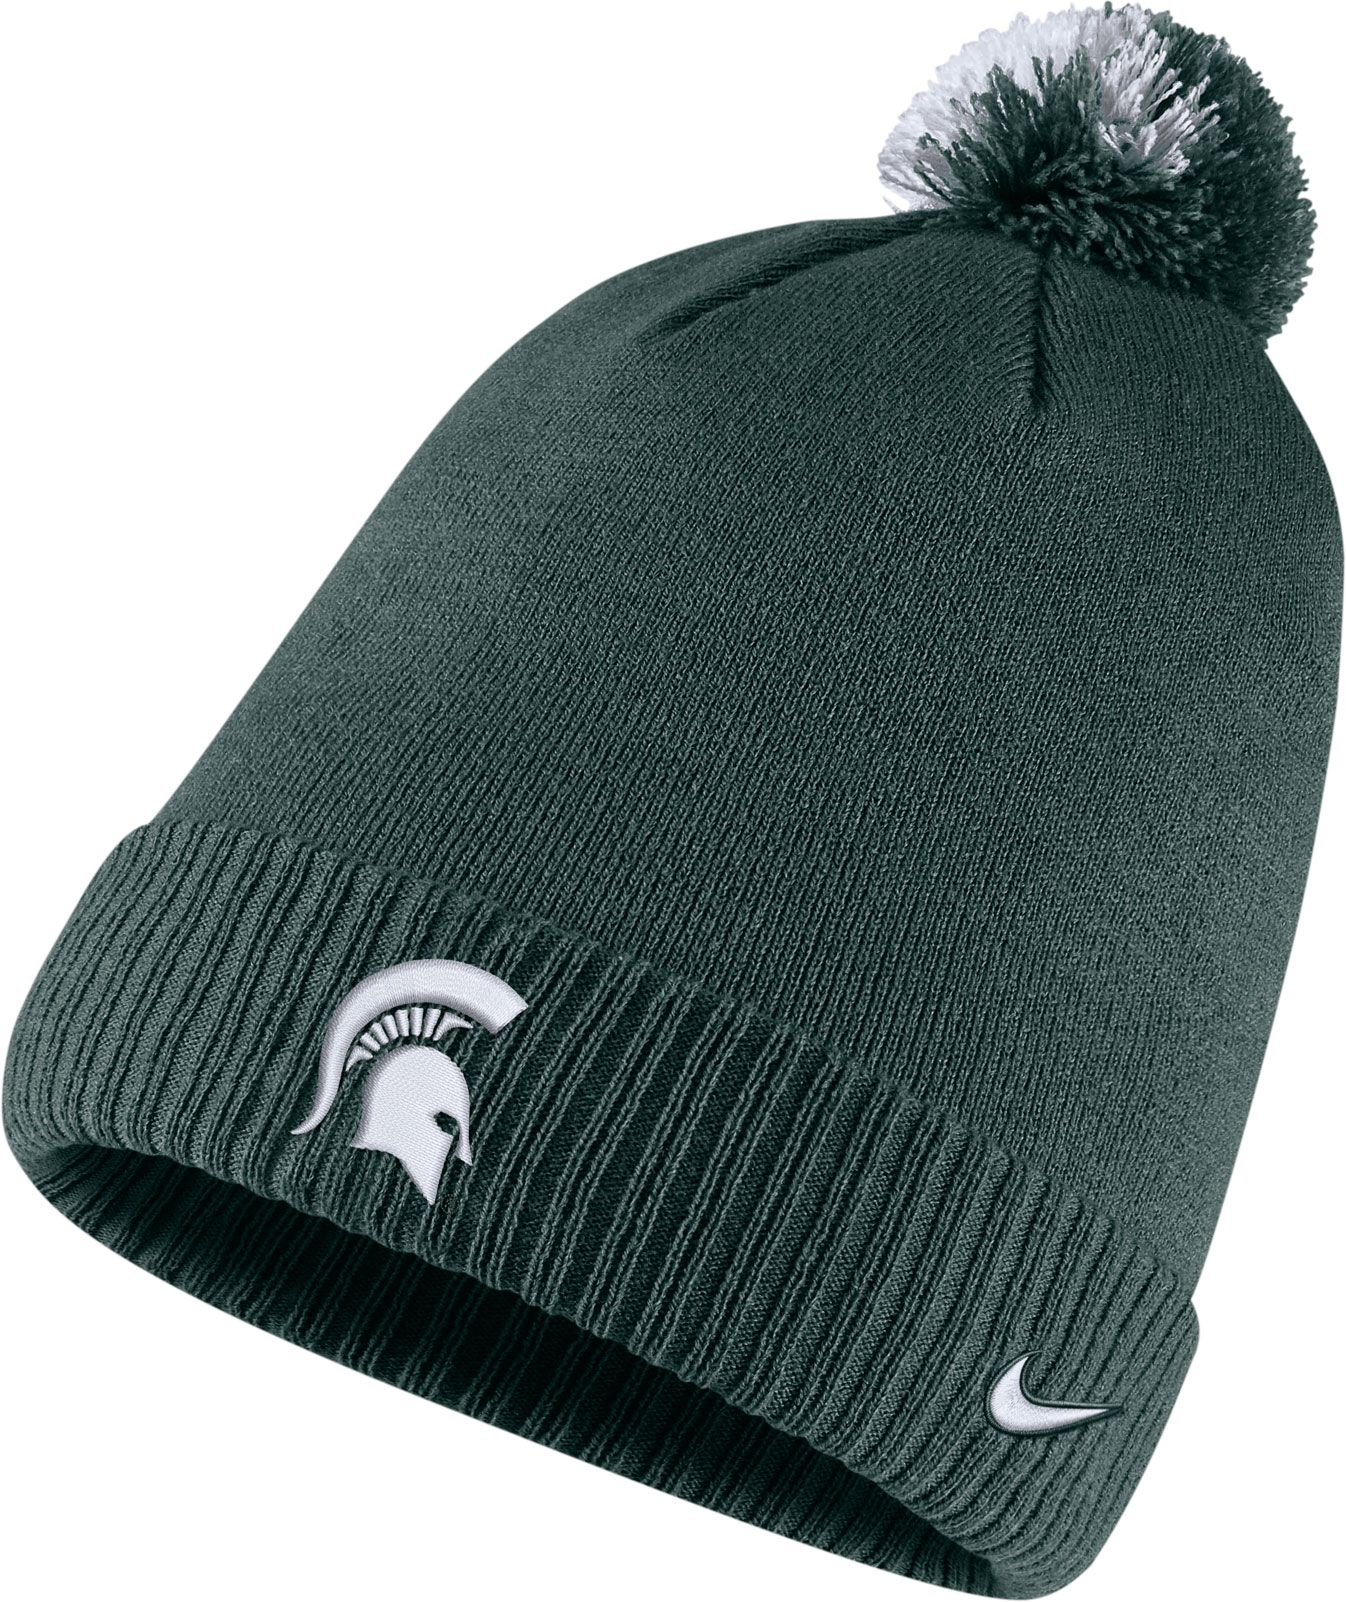 03287938016 ... usa nike mens michigan state spartans green football sideline pom  beanie 75d26 694ad